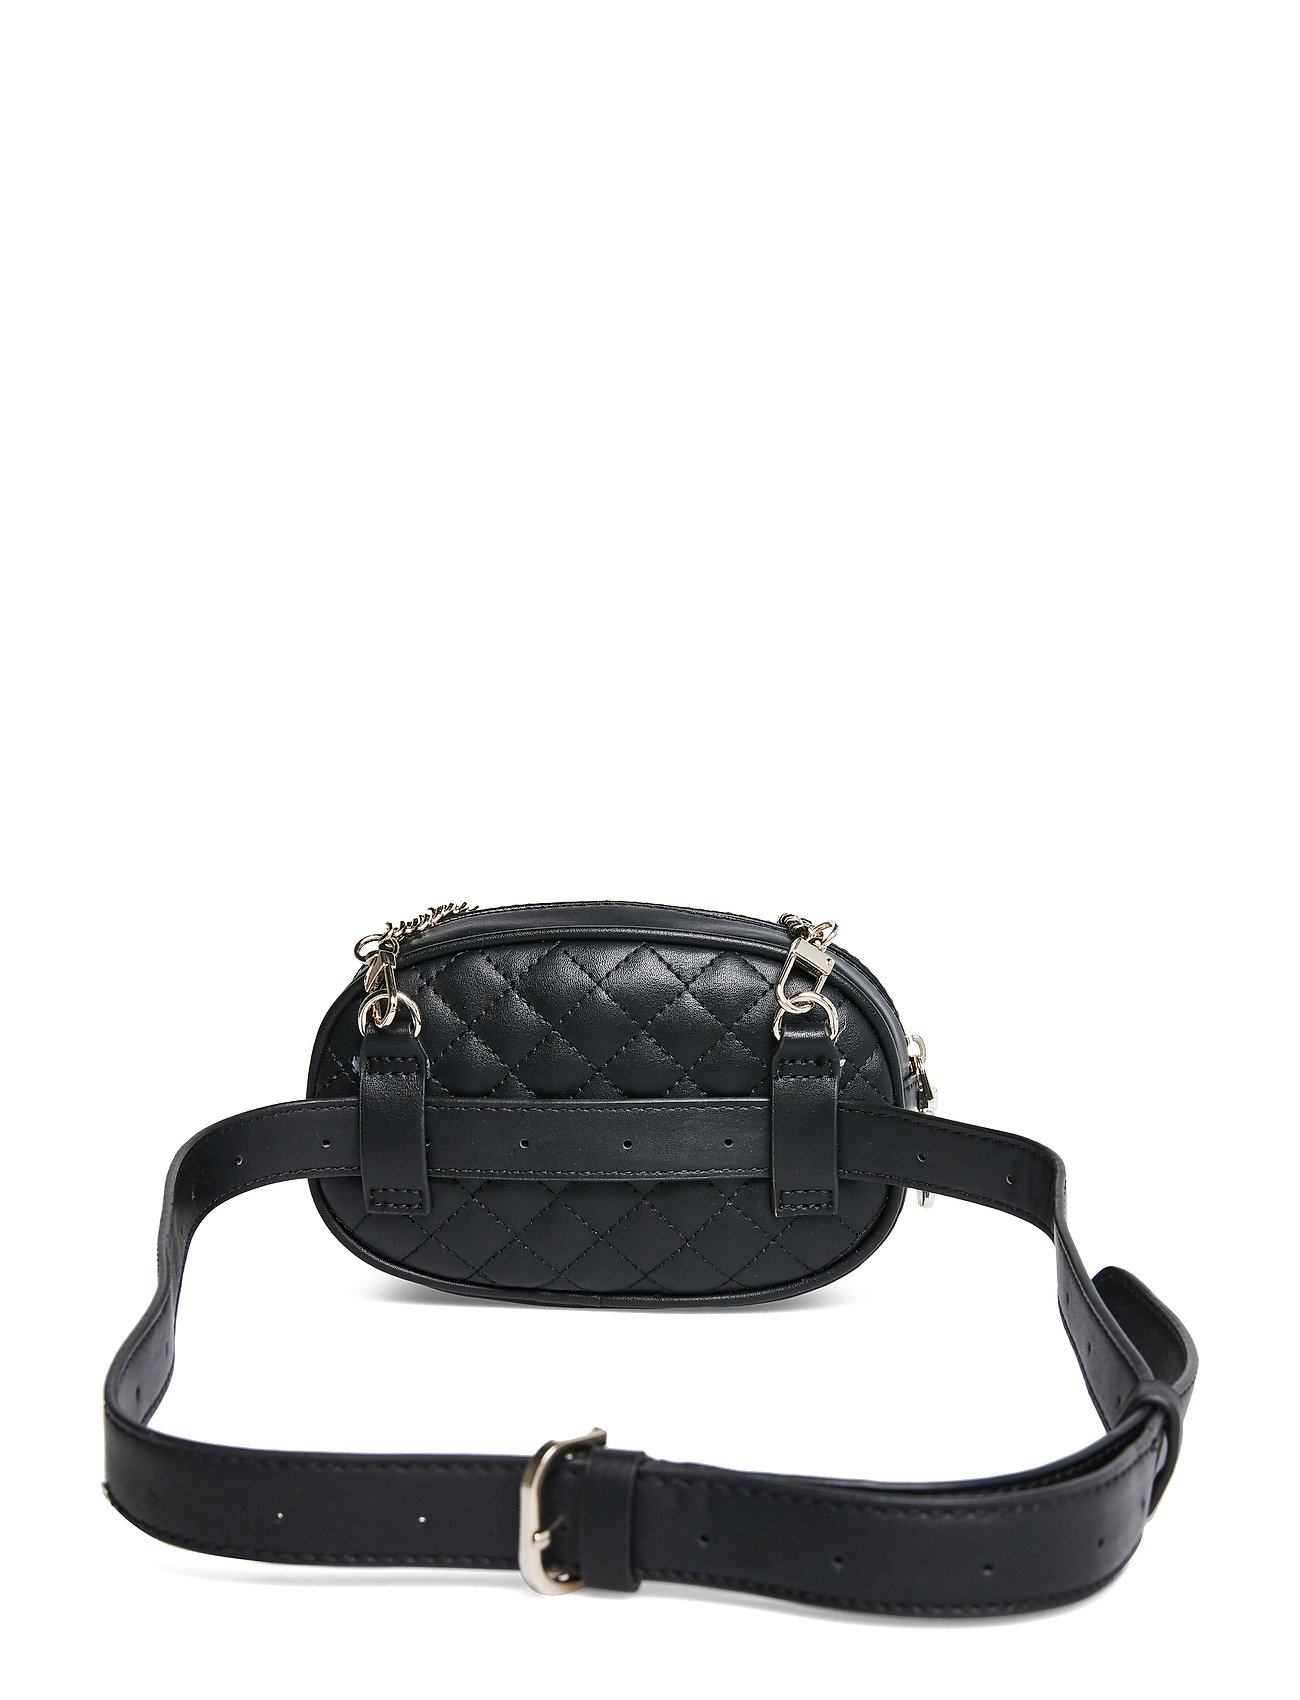 Guess Xbody Xbody Passion Bagblack Belt Guess Passion Bagblack Belt Guess 35LA4qcRj